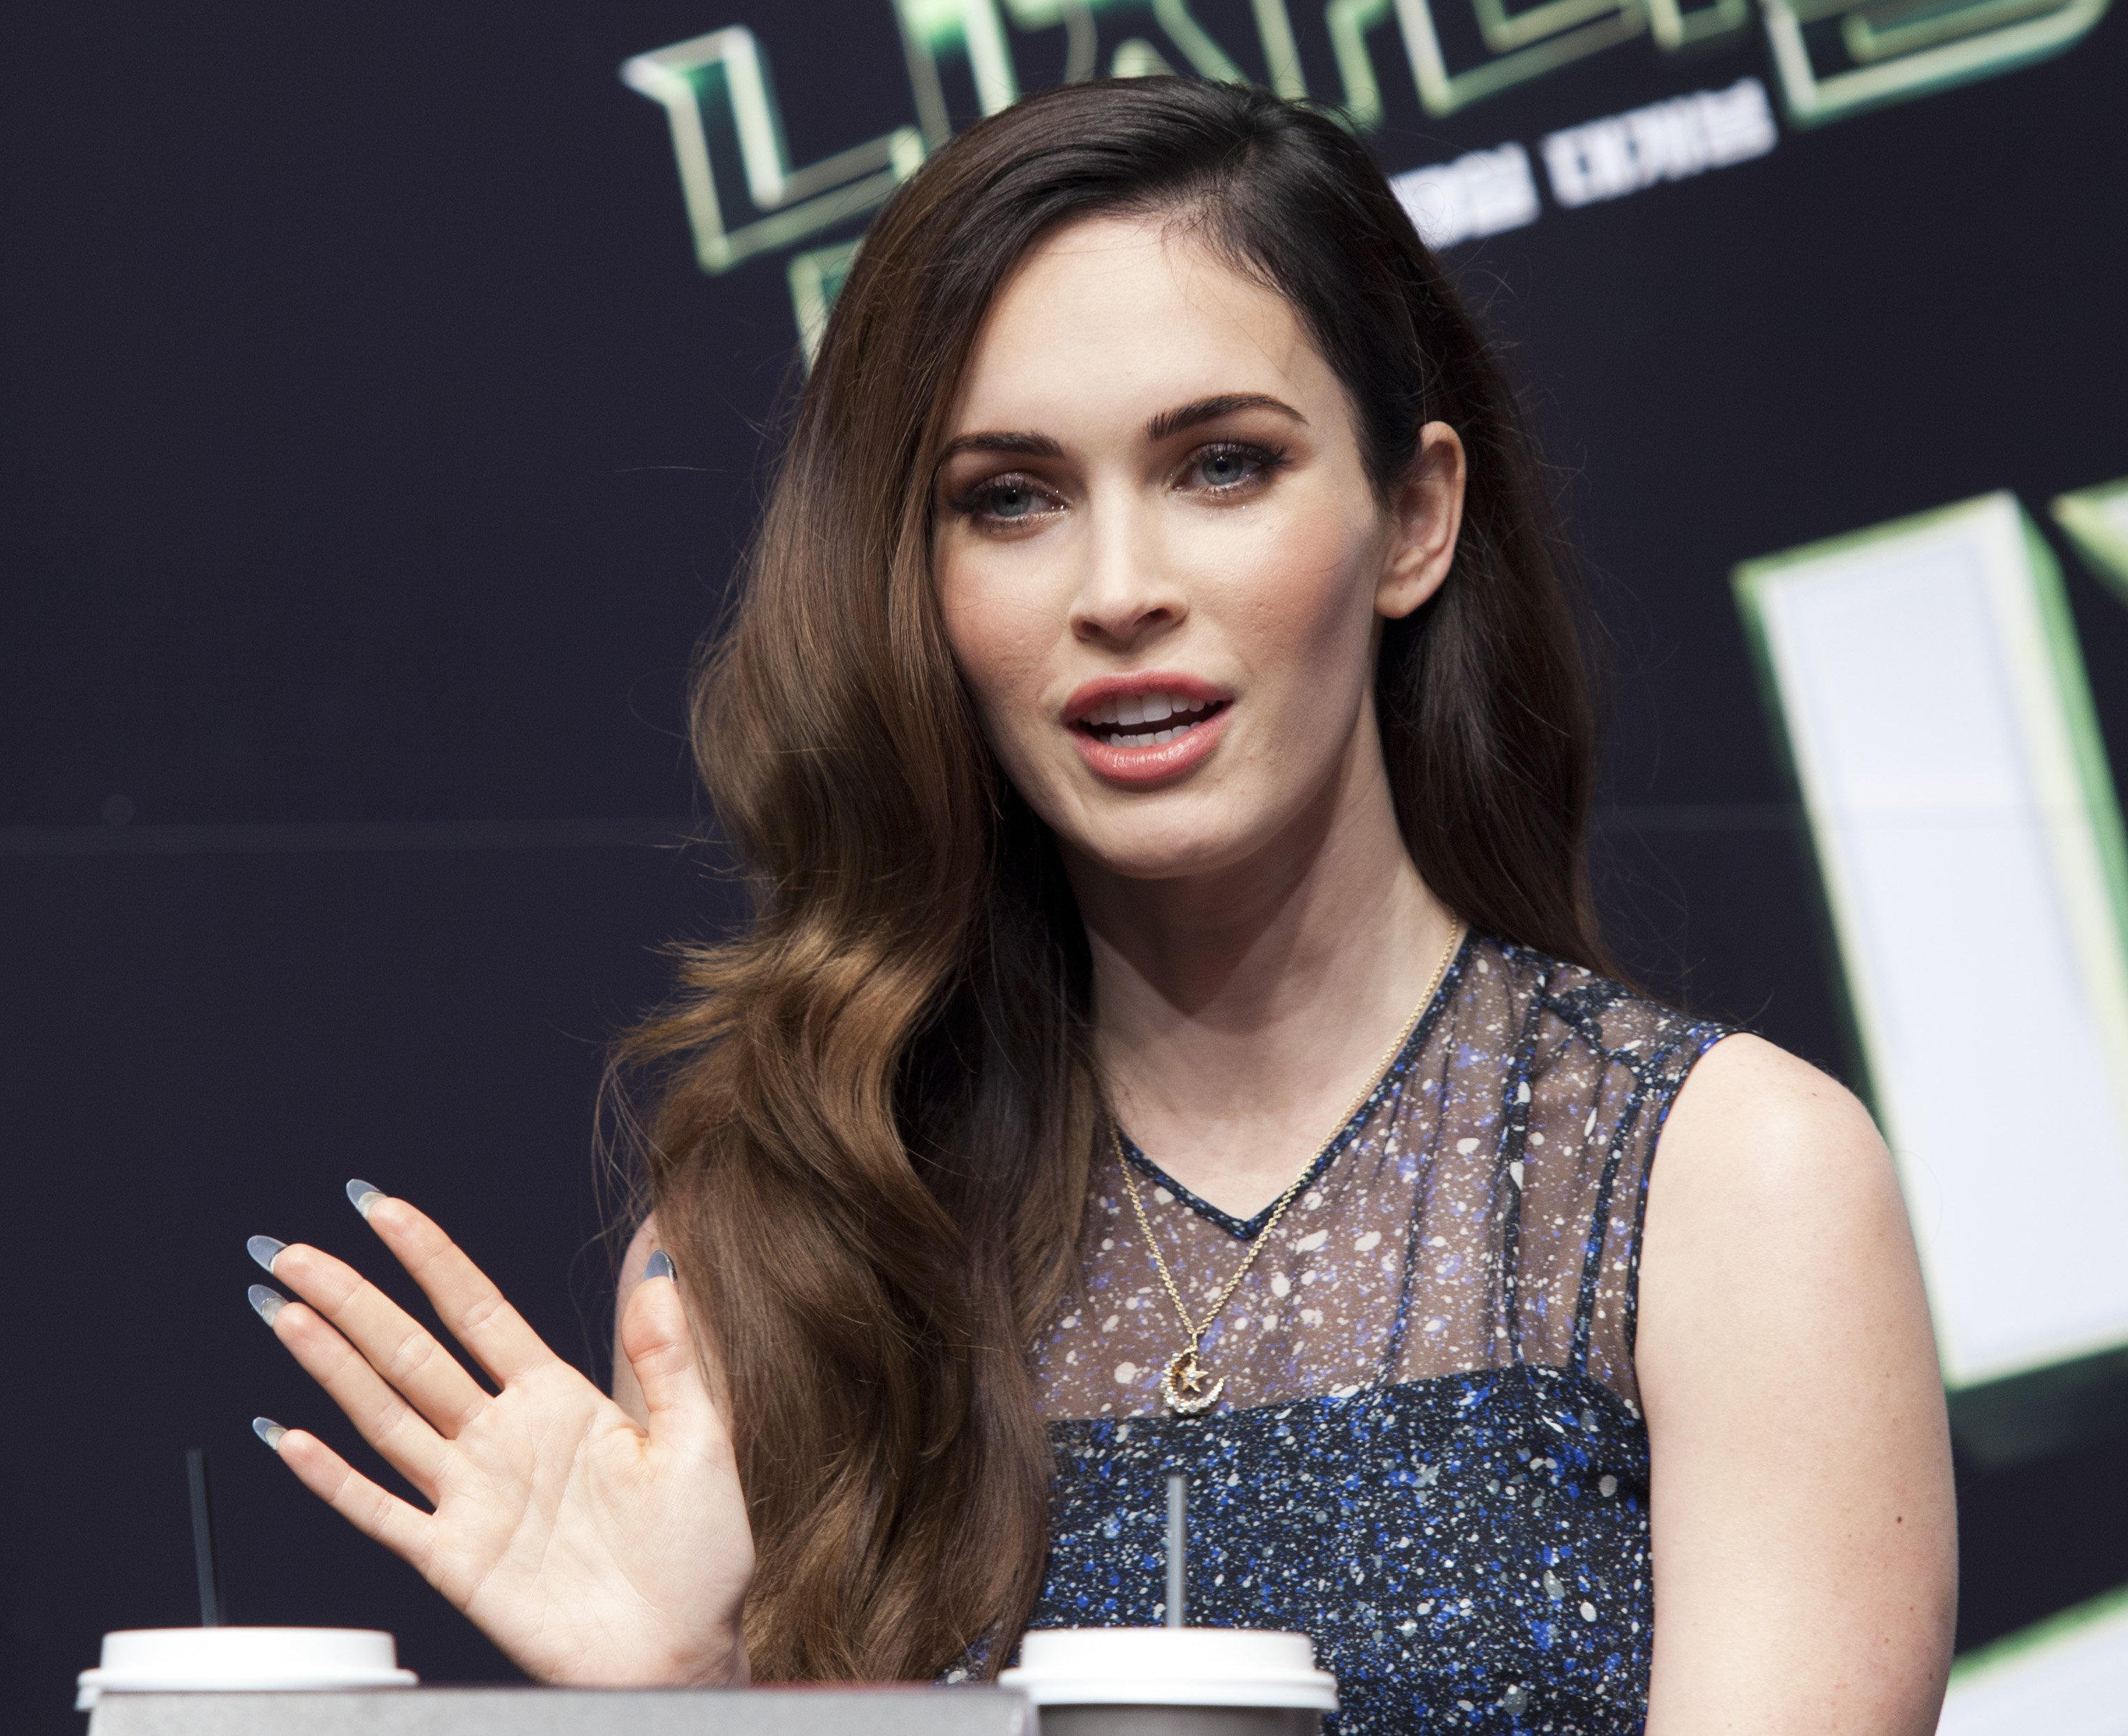 Megan Fox Teenage Mutant Ninja Turtles, press conference in Seoul August 27, 2014